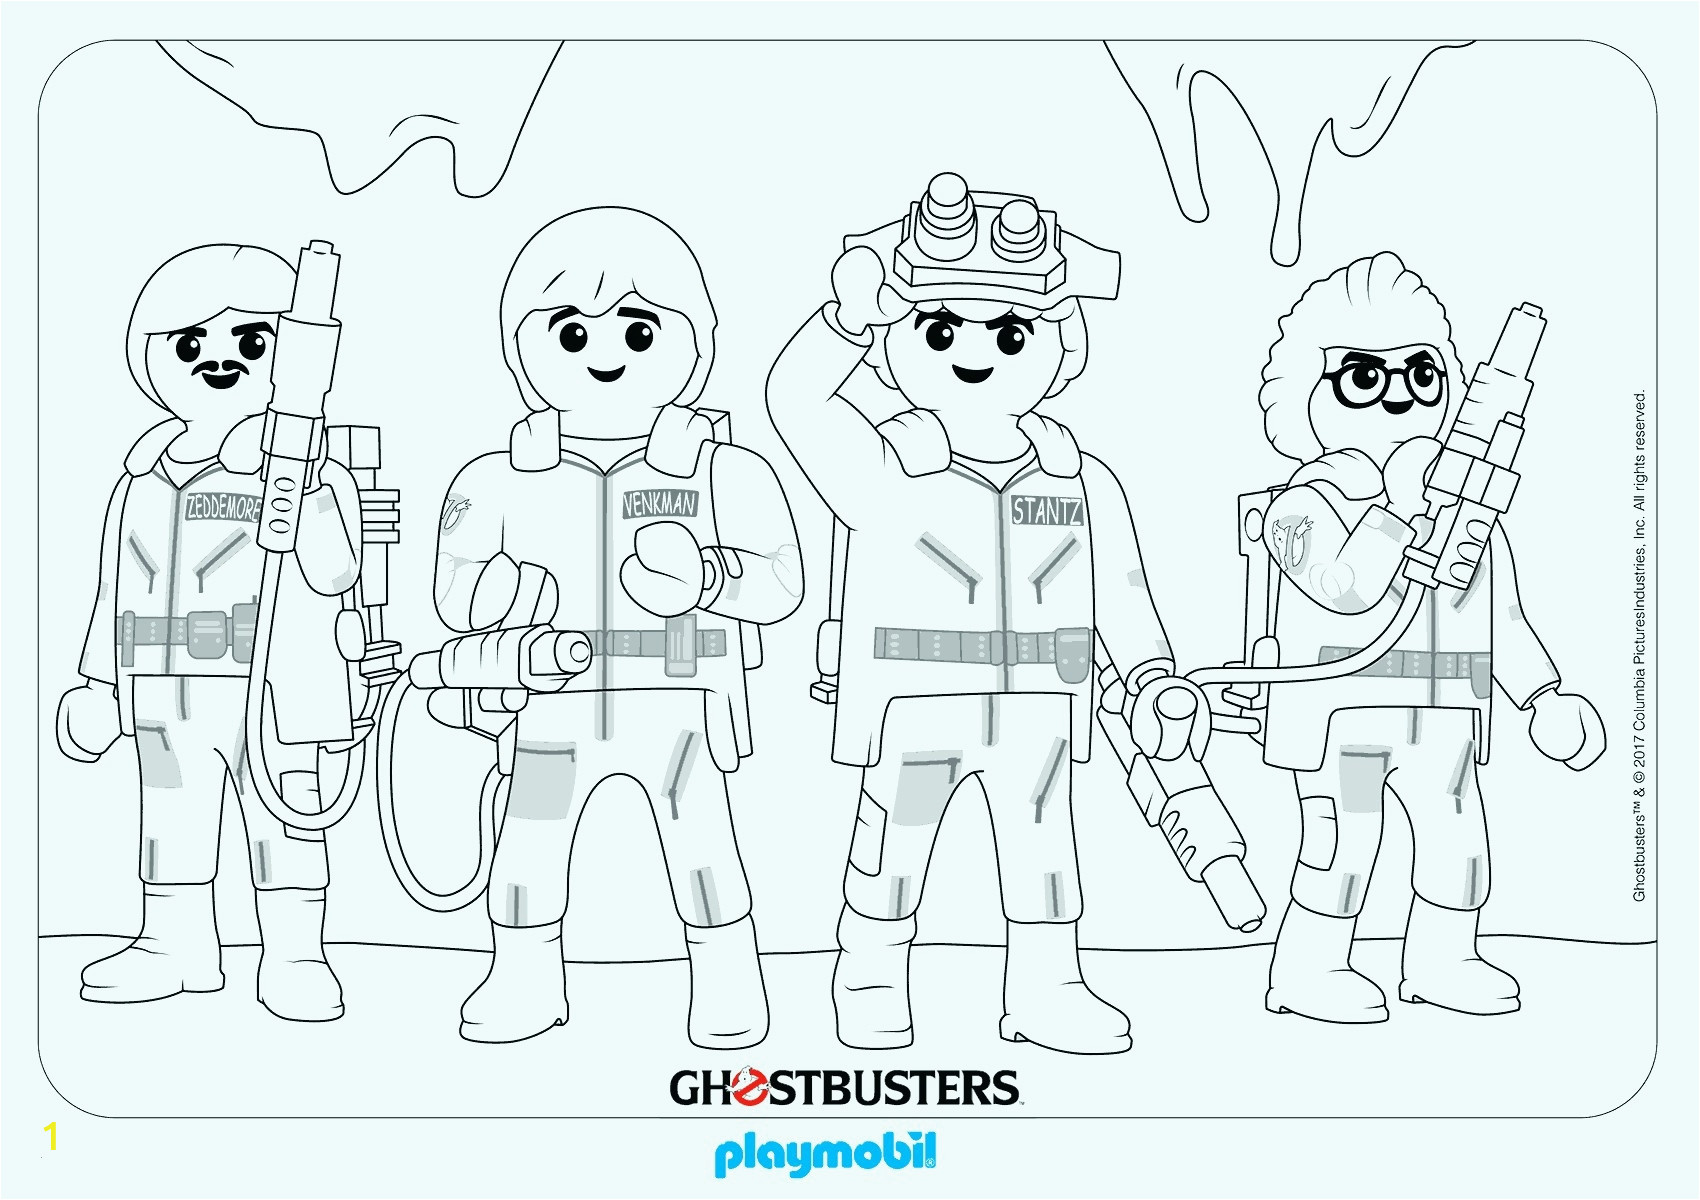 playmobil ghostbusters coloring pages | divyajanani